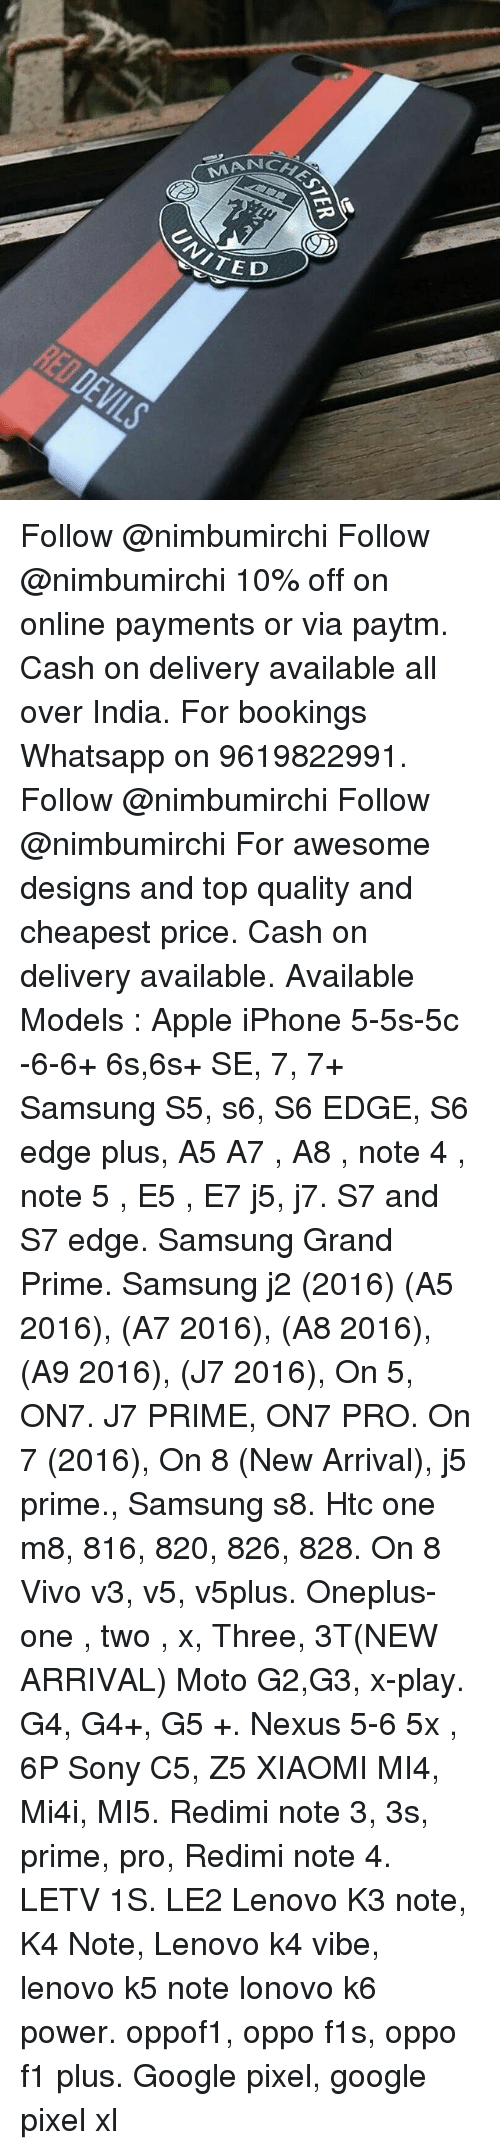 Apple, Google, and Iphone: CHES  SLATED Follow @nimbumirchi Follow @nimbumirchi 10% off on online payments or via paytm. Cash on delivery available all over India. For bookings Whatsapp on 9619822991. Follow @nimbumirchi Follow @nimbumirchi For awesome designs and top quality and cheapest price. Cash on delivery available. Available Models : Apple iPhone 5-5s-5c -6-6+ 6s,6s+ SE, 7, 7+ Samsung S5, s6, S6 EDGE, S6 edge plus, A5 A7 , A8 , note 4 , note 5 , E5 , E7 j5, j7. S7 and S7 edge. Samsung Grand Prime. Samsung j2 (2016) (A5 2016), (A7 2016), (A8 2016), (A9 2016), (J7 2016), On 5, ON7. J7 PRIME, ON7 PRO. On 7 (2016), On 8 (New Arrival), j5 prime., Samsung s8. Htc one m8, 816, 820, 826, 828. On 8 Vivo v3, v5, v5plus. Oneplus- one , two , x, Three, 3T(NEW ARRIVAL) Moto G2,G3, x-play. G4, G4+, G5 +. Nexus 5-6 5x , 6P Sony C5, Z5 XIAOMI MI4, Mi4i, MI5. Redimi note 3, 3s, prime, pro, Redimi note 4. LETV 1S. LE2 Lenovo K3 note, K4 Note, Lenovo k4 vibe, lenovo k5 note lonovo k6 power. oppof1, oppo f1s, oppo f1 plus. Google pixel, google pixel xl